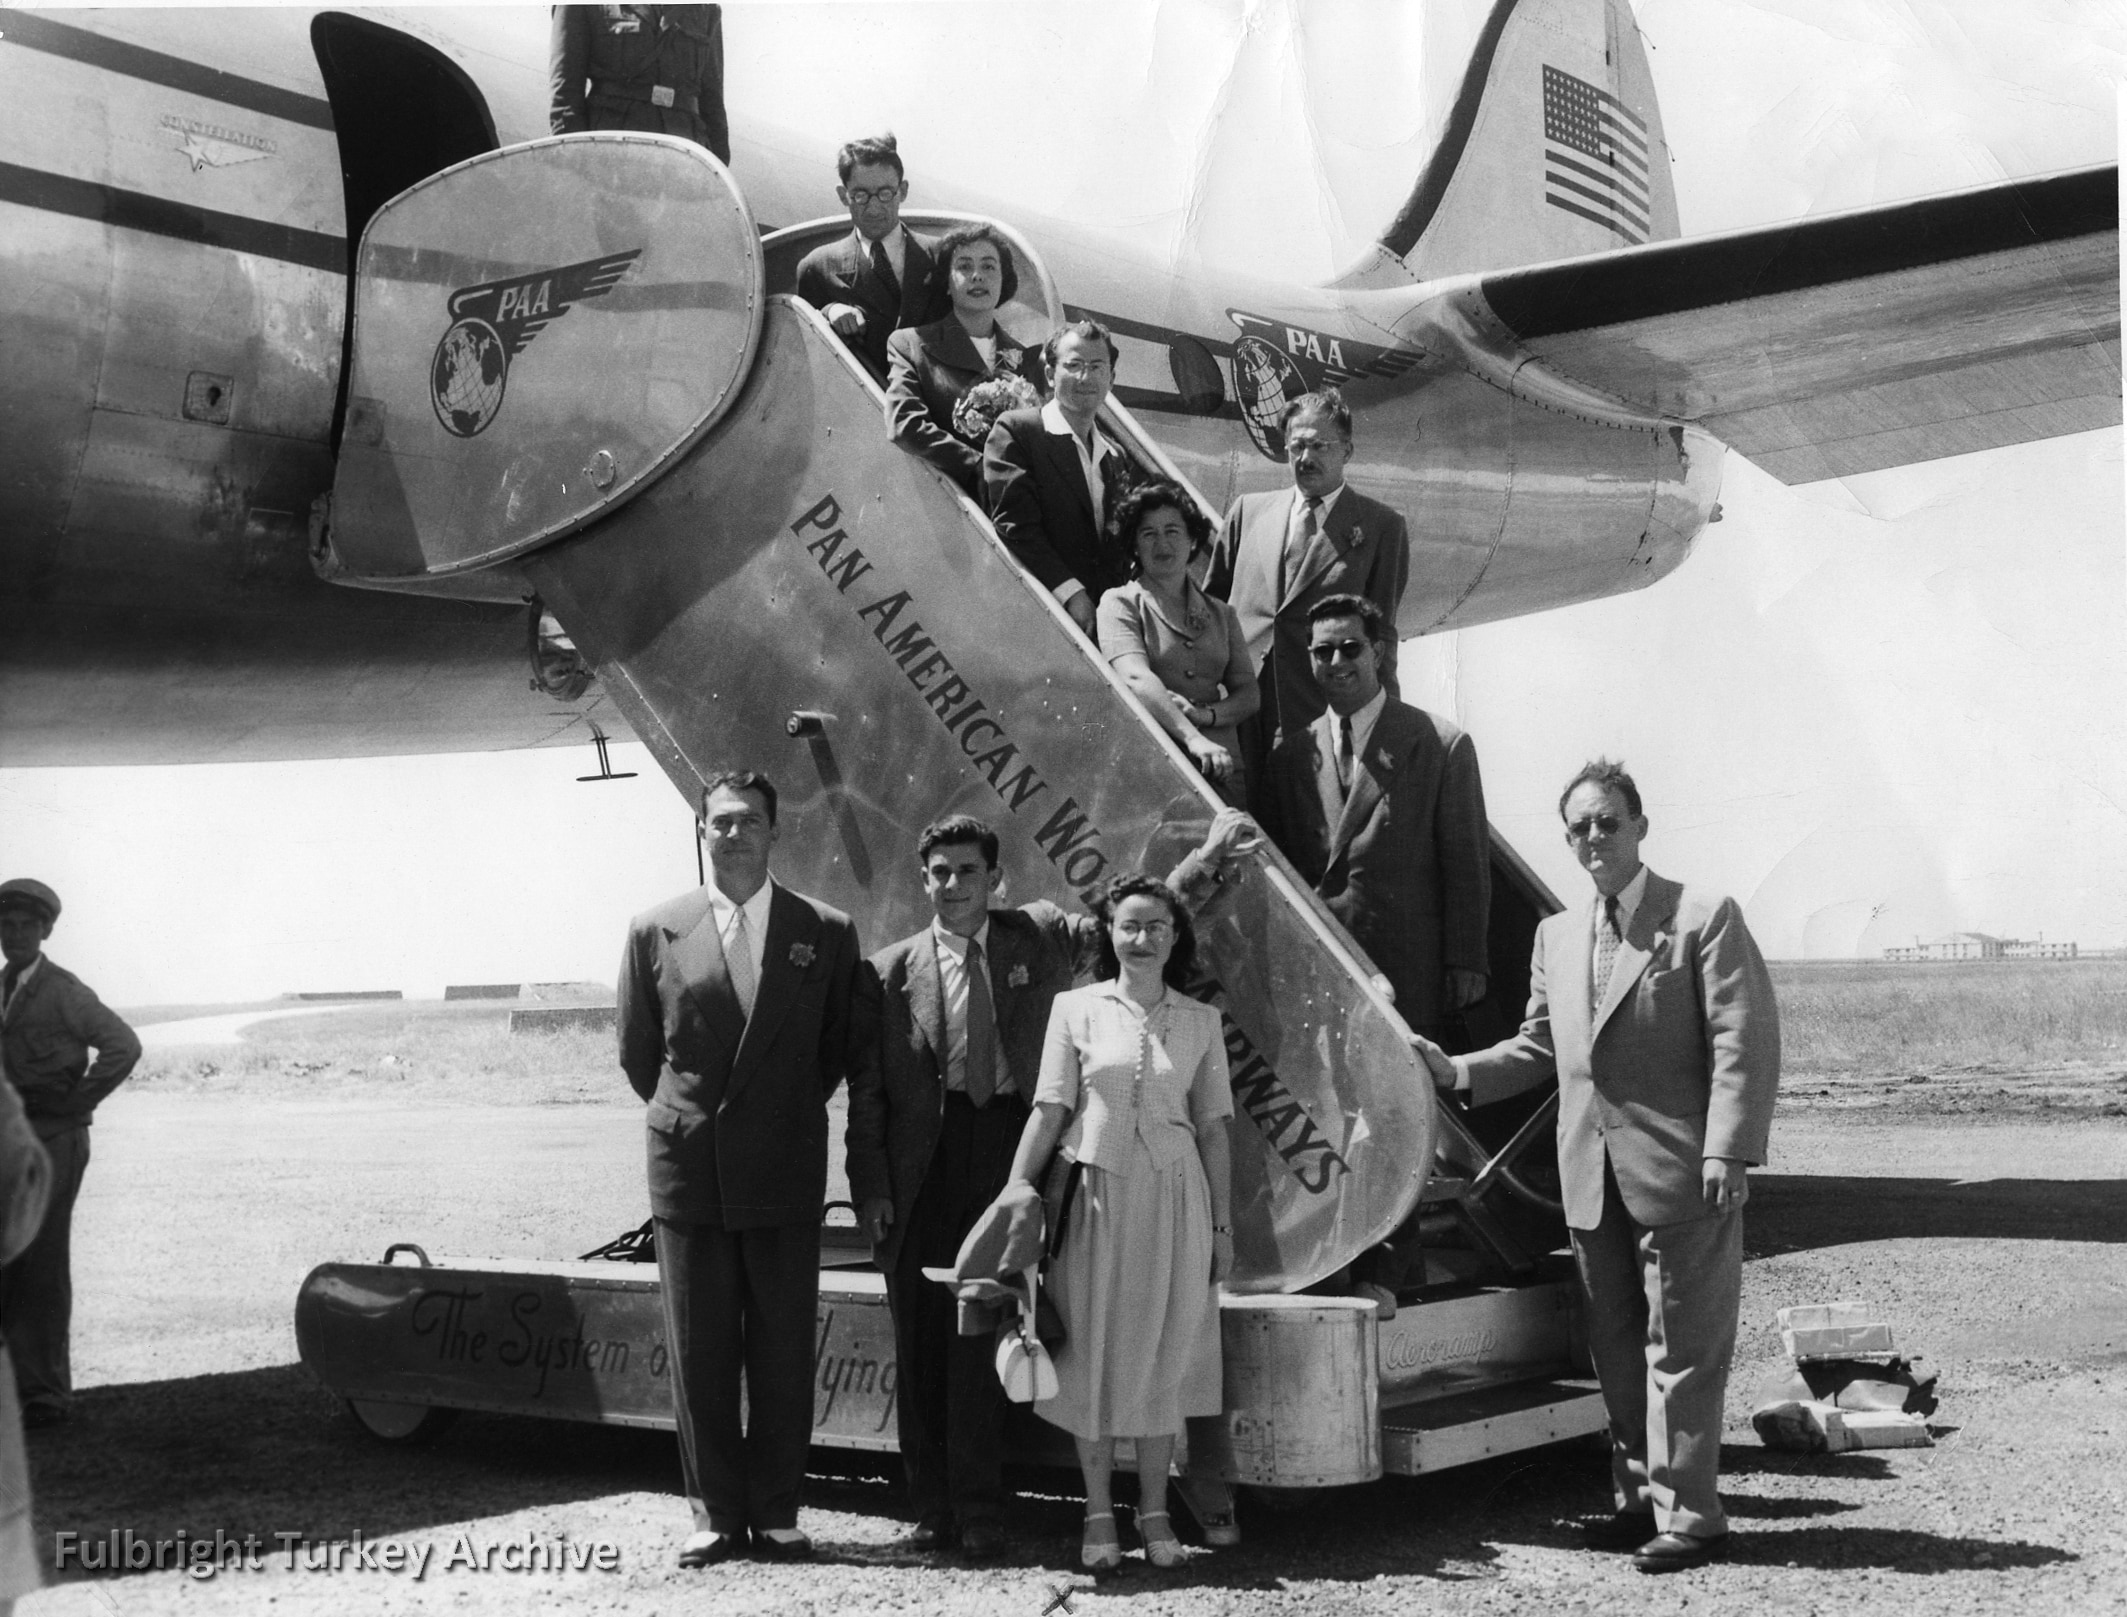 The first group of Fulbright student program participants from Turkey boarding the plane to start their studies/research in the USA in 1951. (Photo courtesy of Fulbright Turkey)